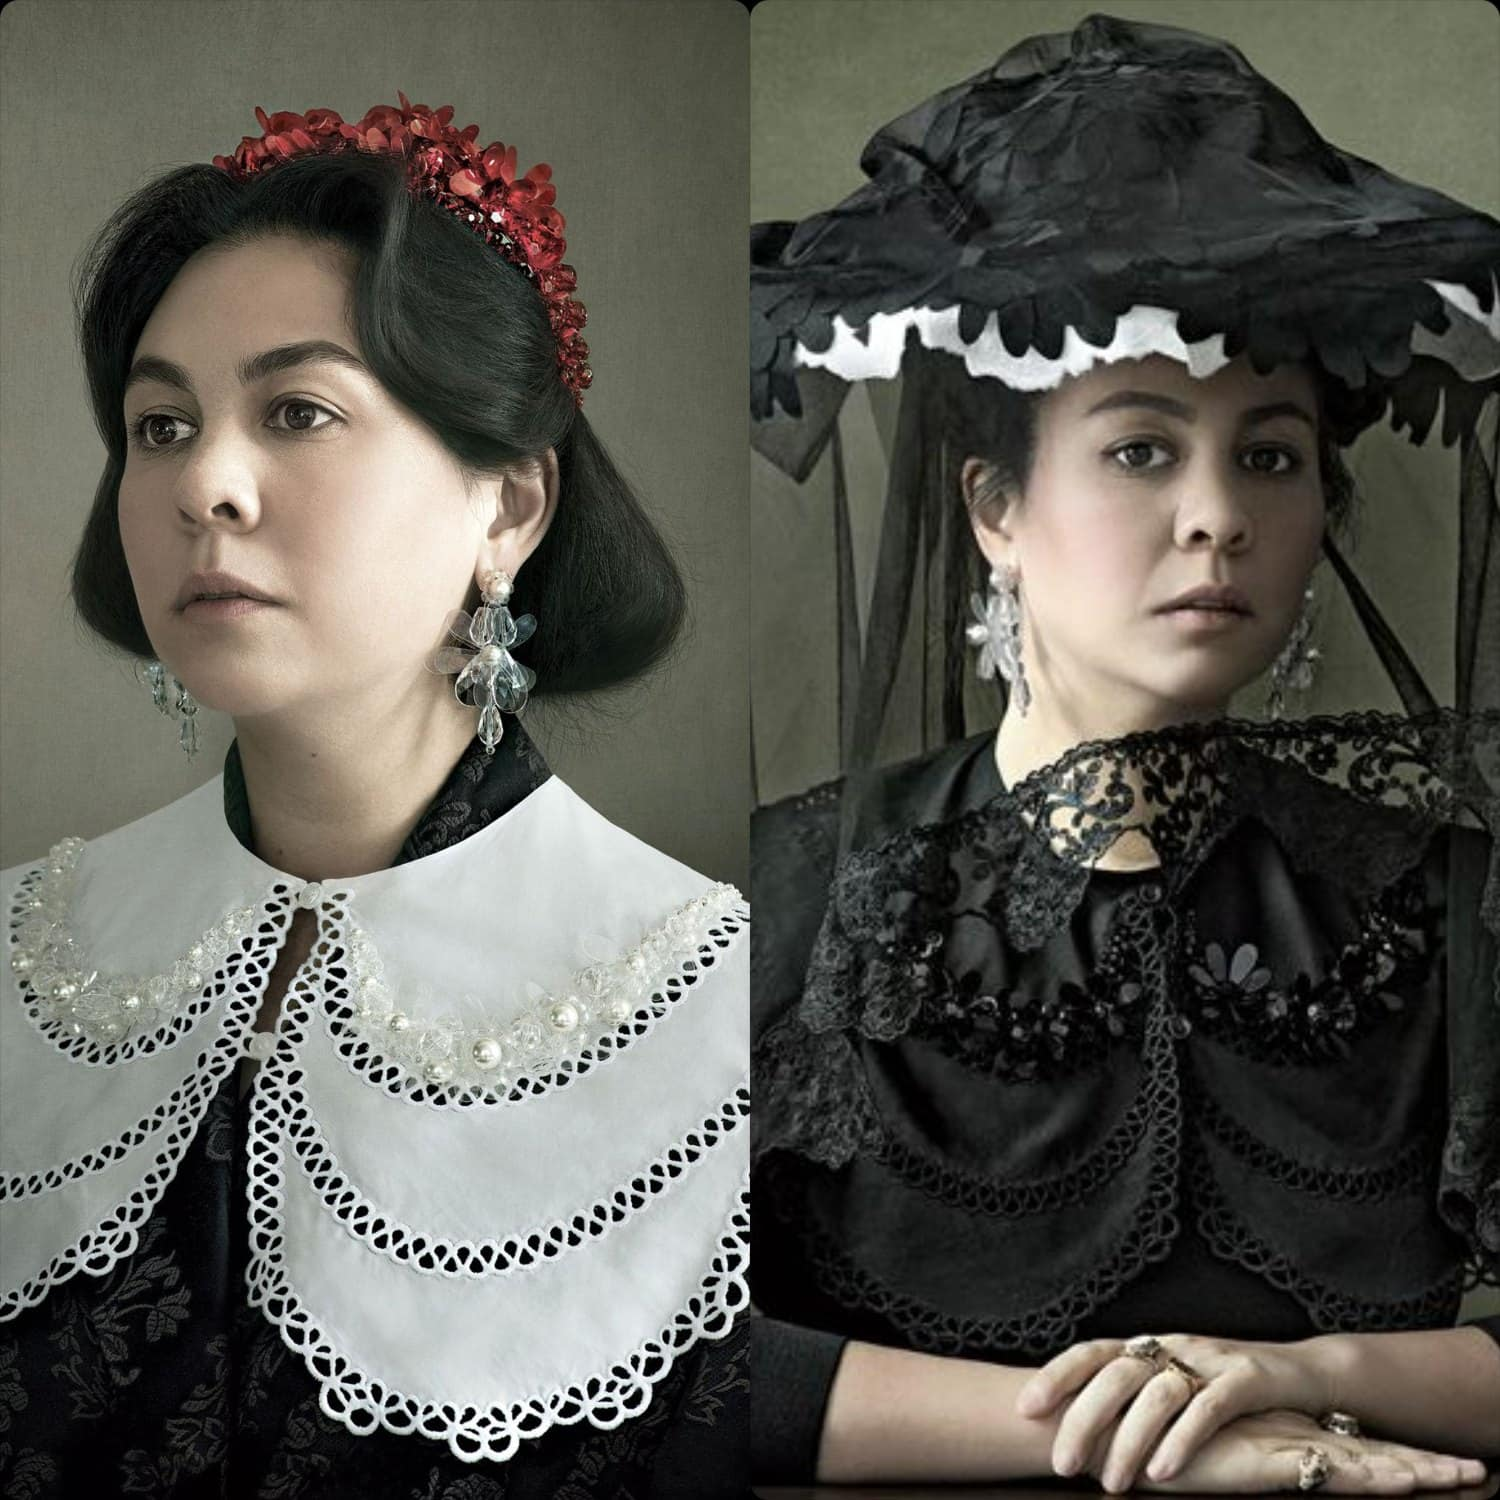 Designer Simone Rocha. RUNWAY MAGAZINE ® Collections. RUNWAY NOW / RUNWAY NEW